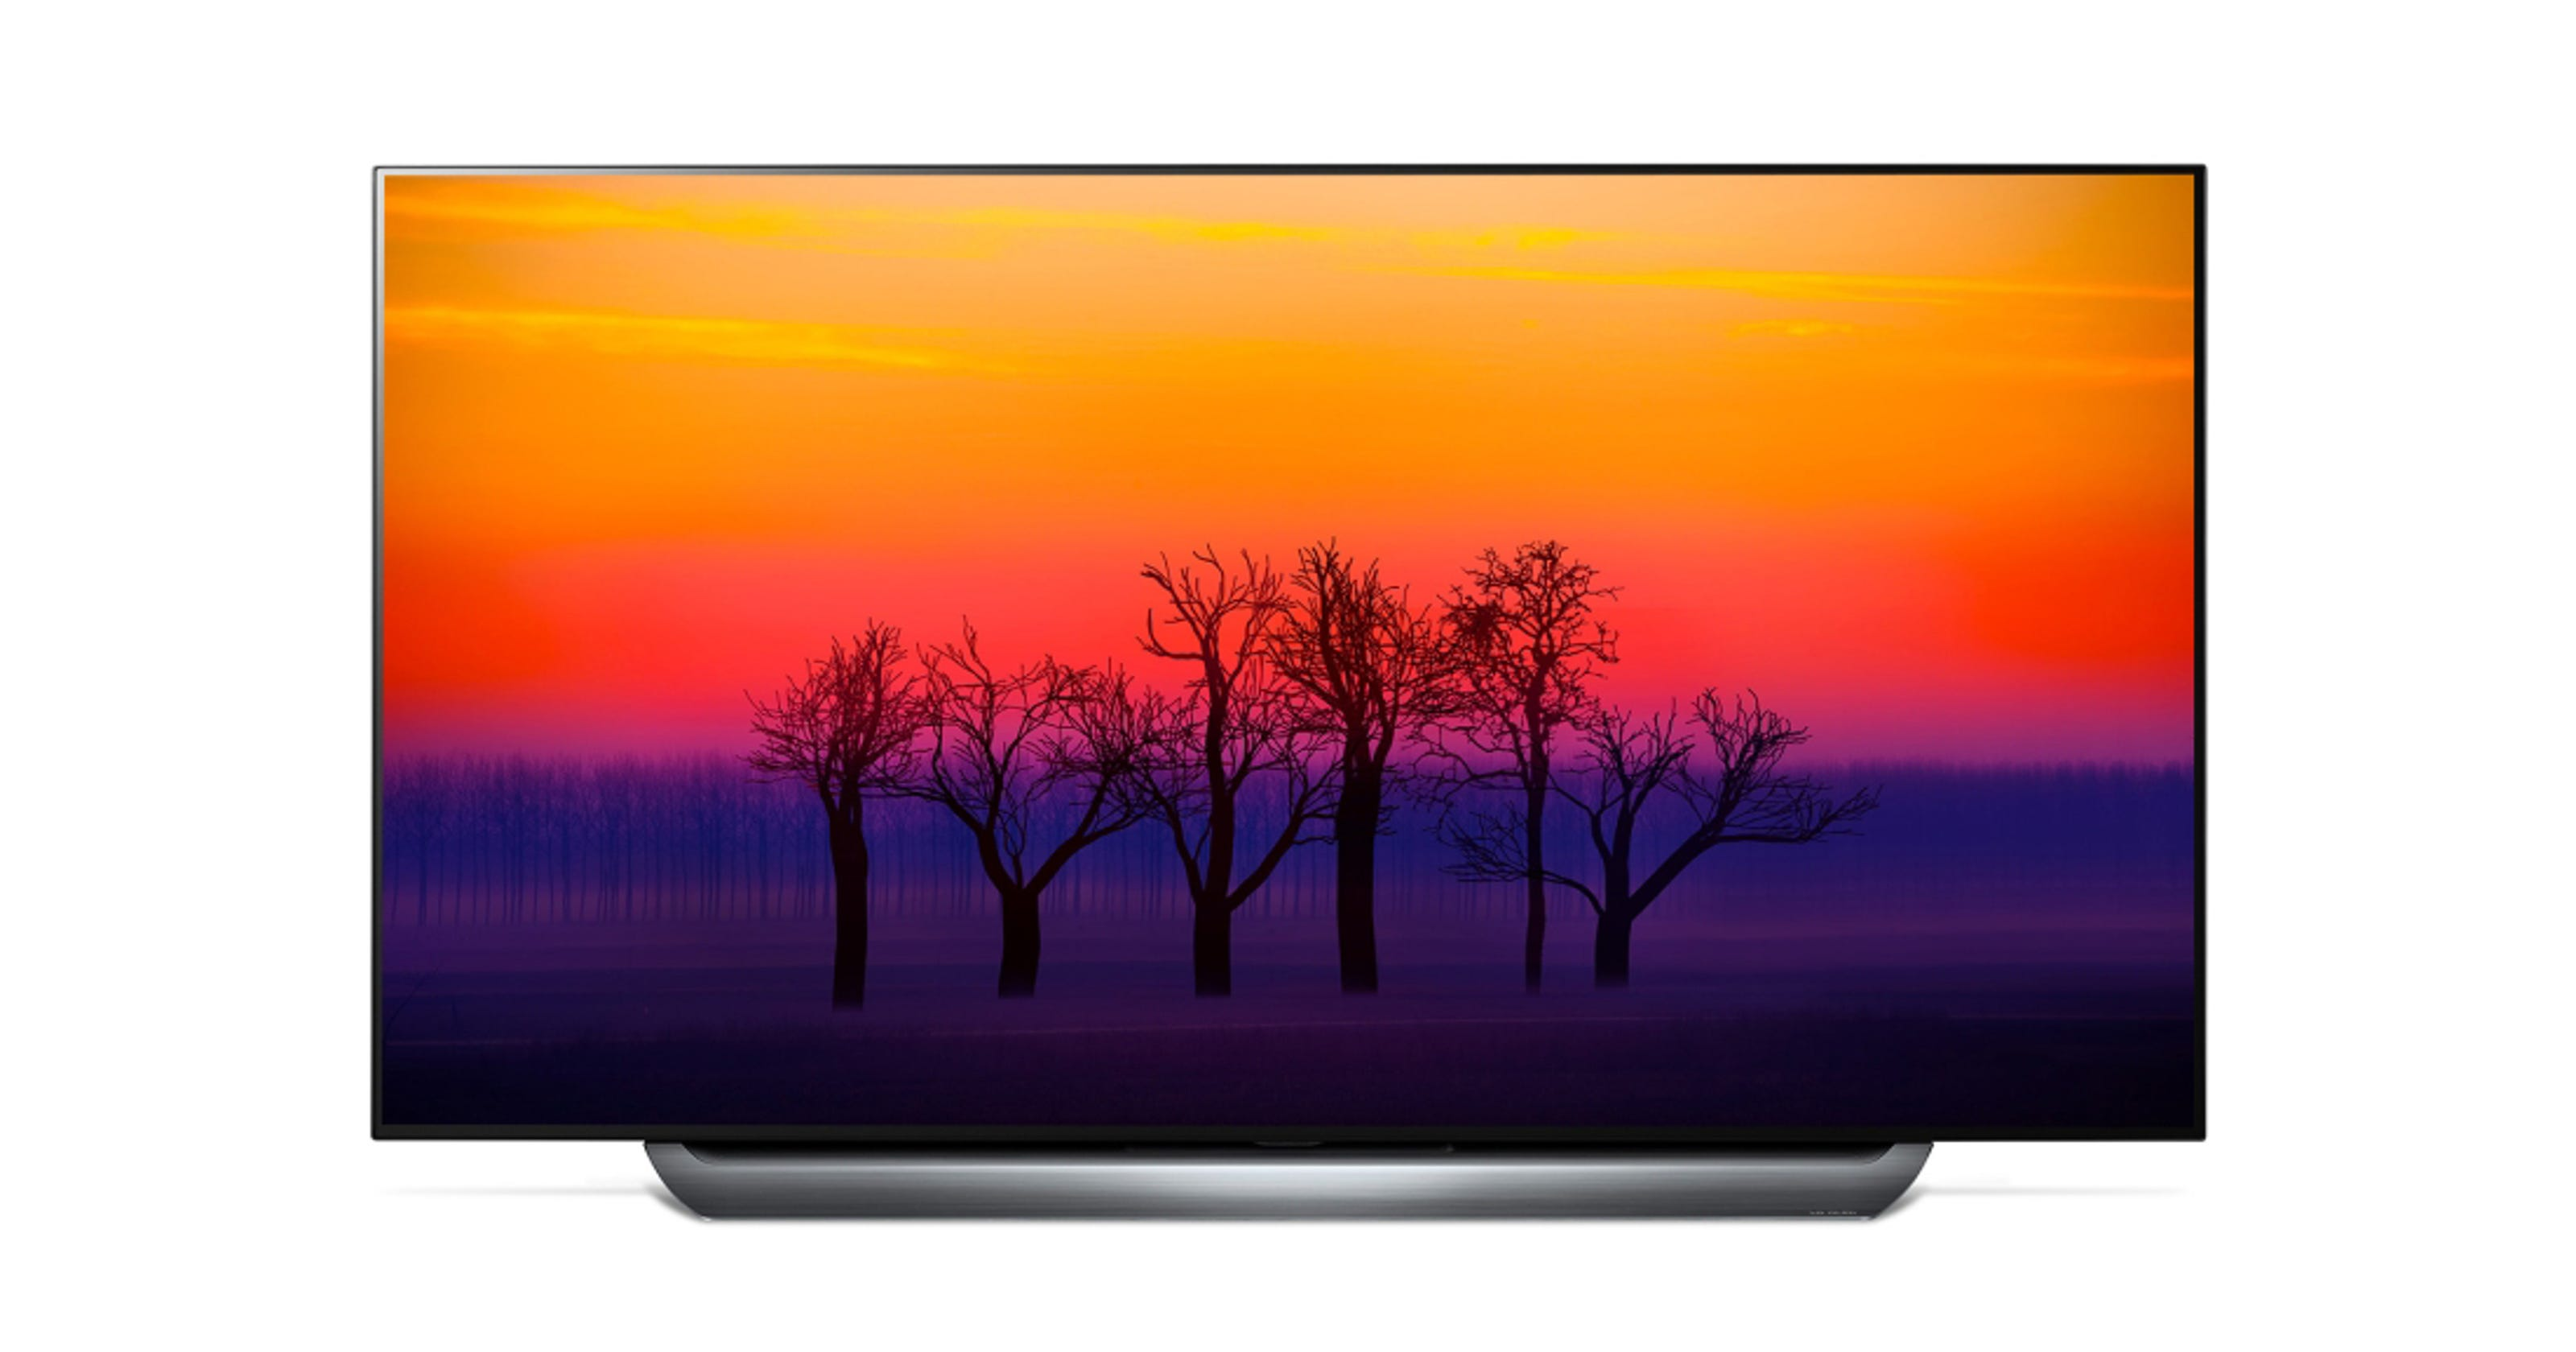 LG C8 TV: This new OLED is the lowest price we've ever seen right now